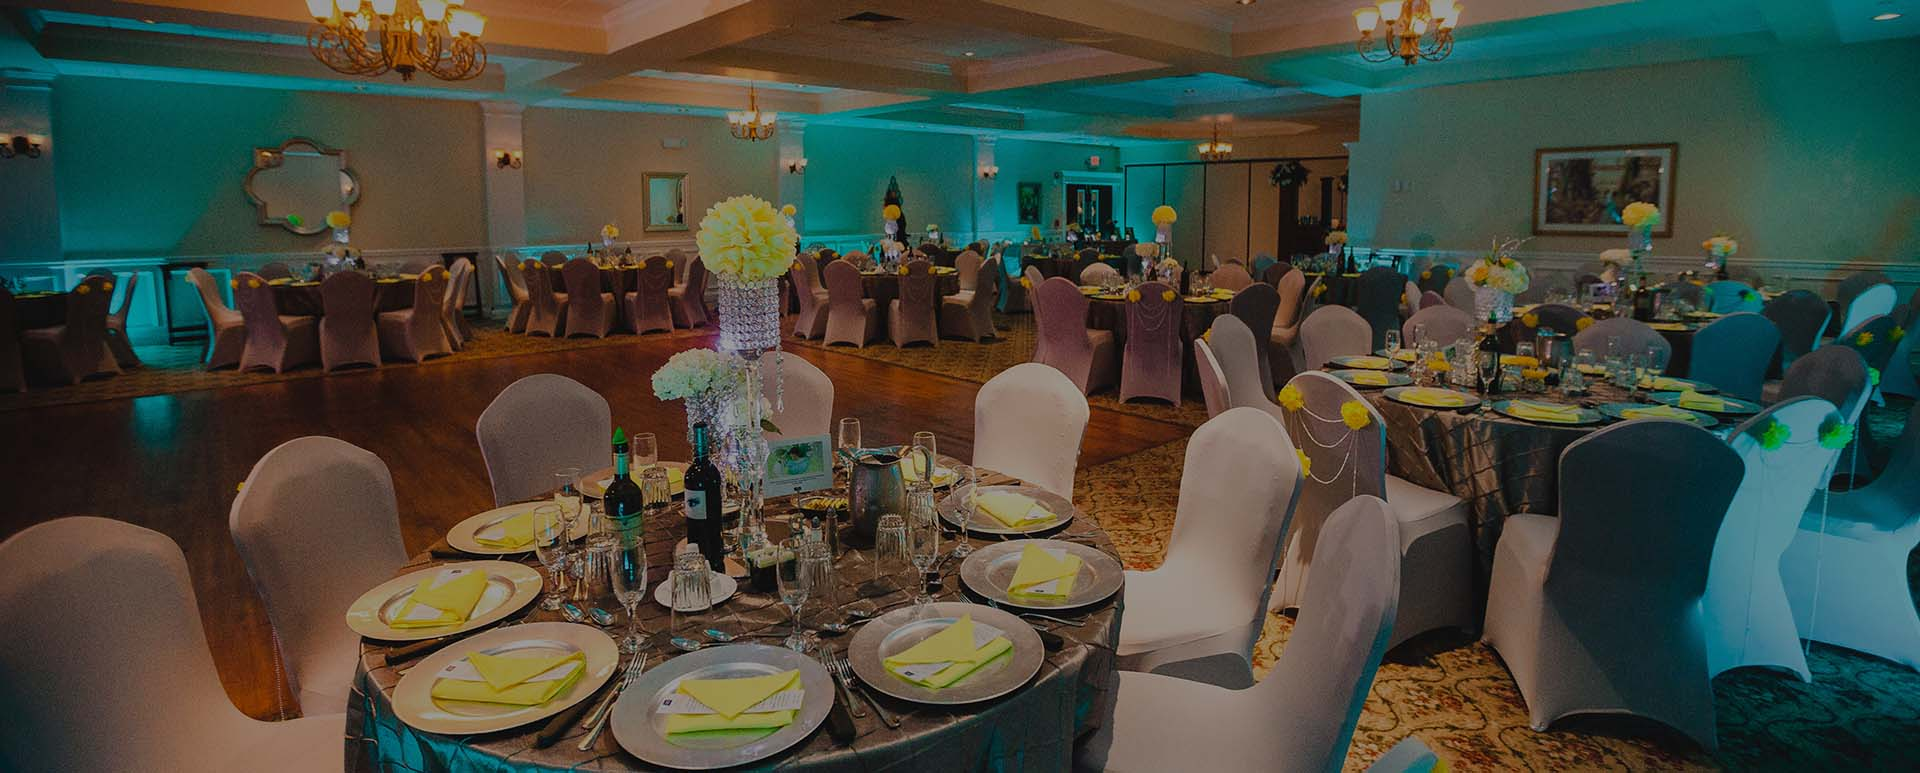 Teal Uplighting in Testa's Banquet Facility